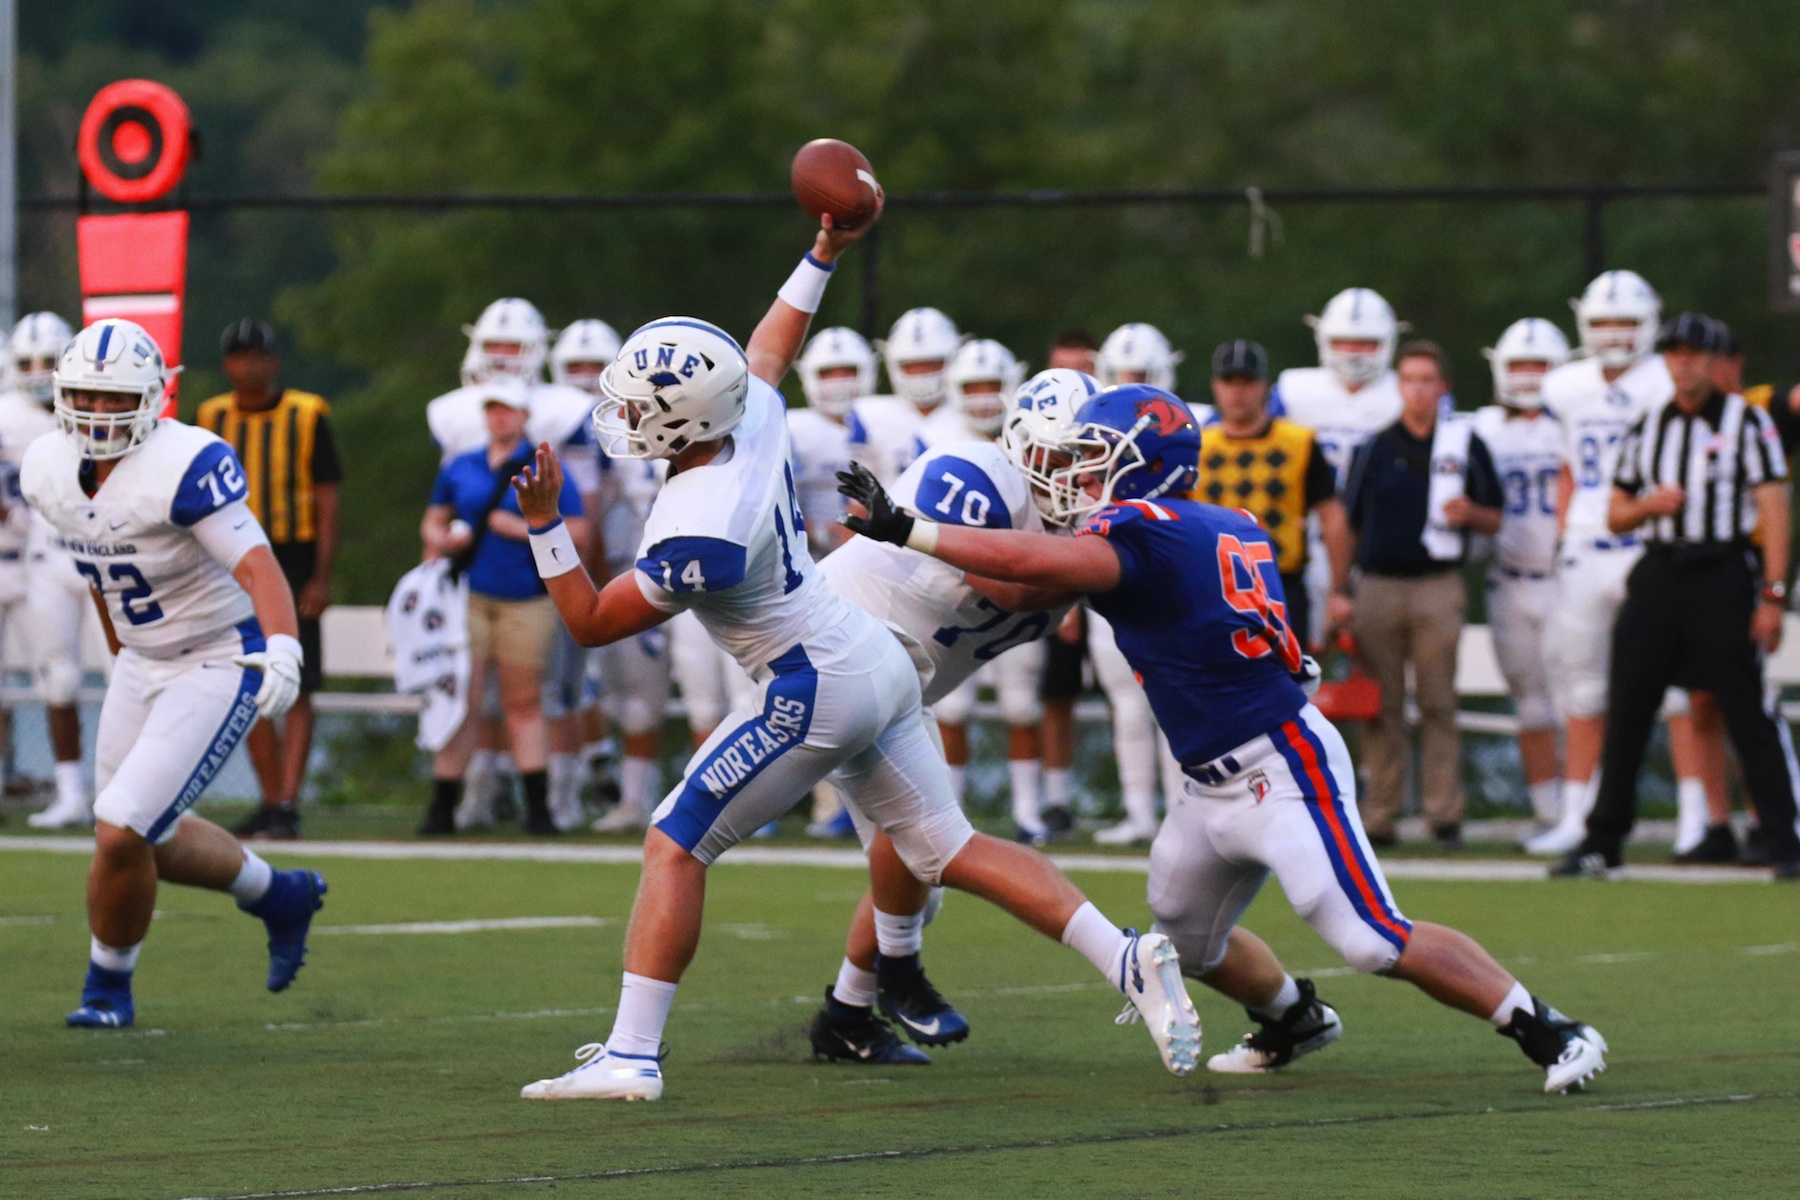 Une Falls Short In First Ever D3 Football Game Journal Tribune